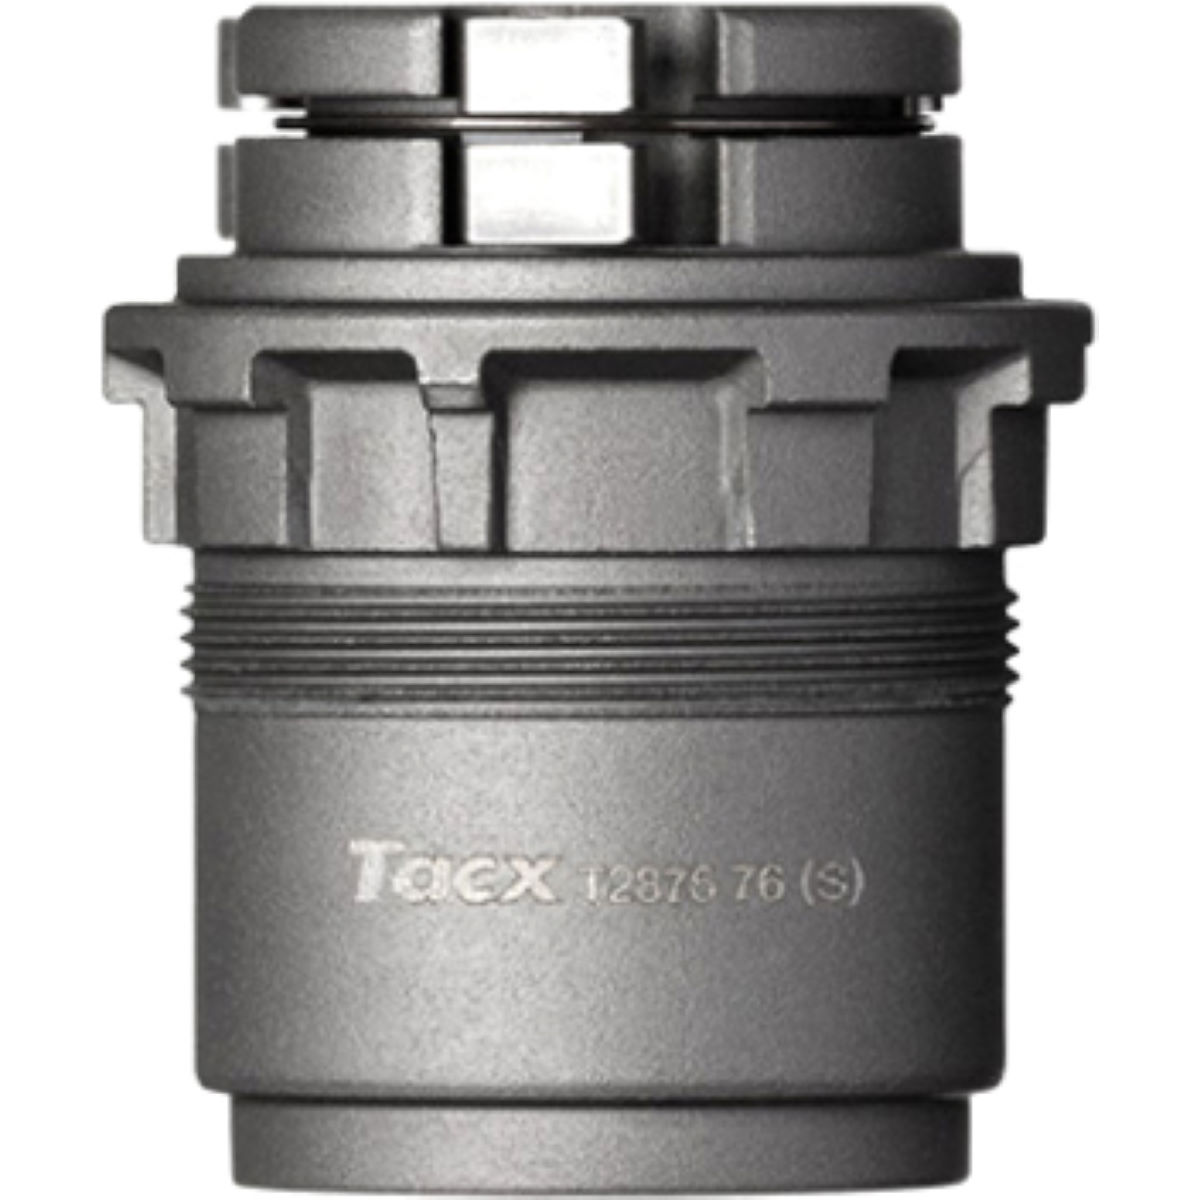 Tacx Sram XDR Freehub Body for Neo 2T   Turbo Trainer Spares